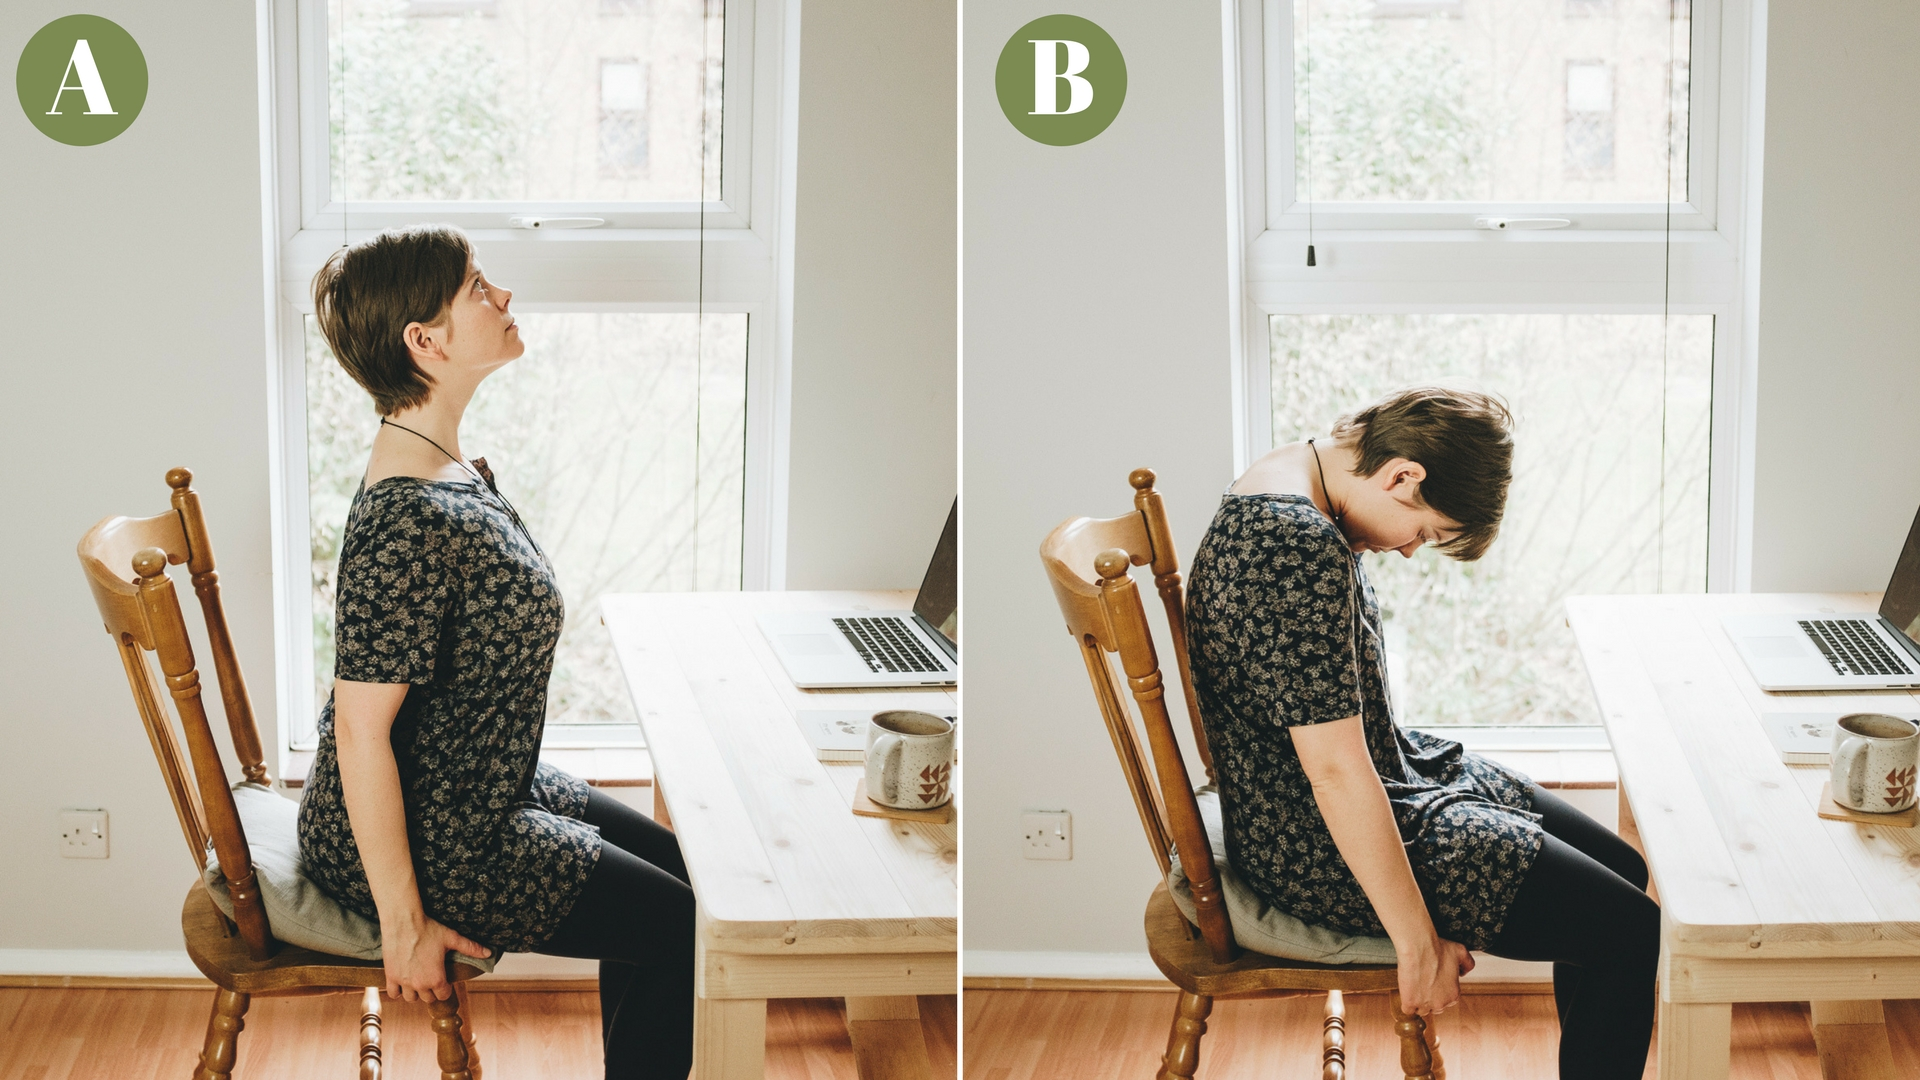 5-10min Desk Yoga for Photographers - Yoga in the Office